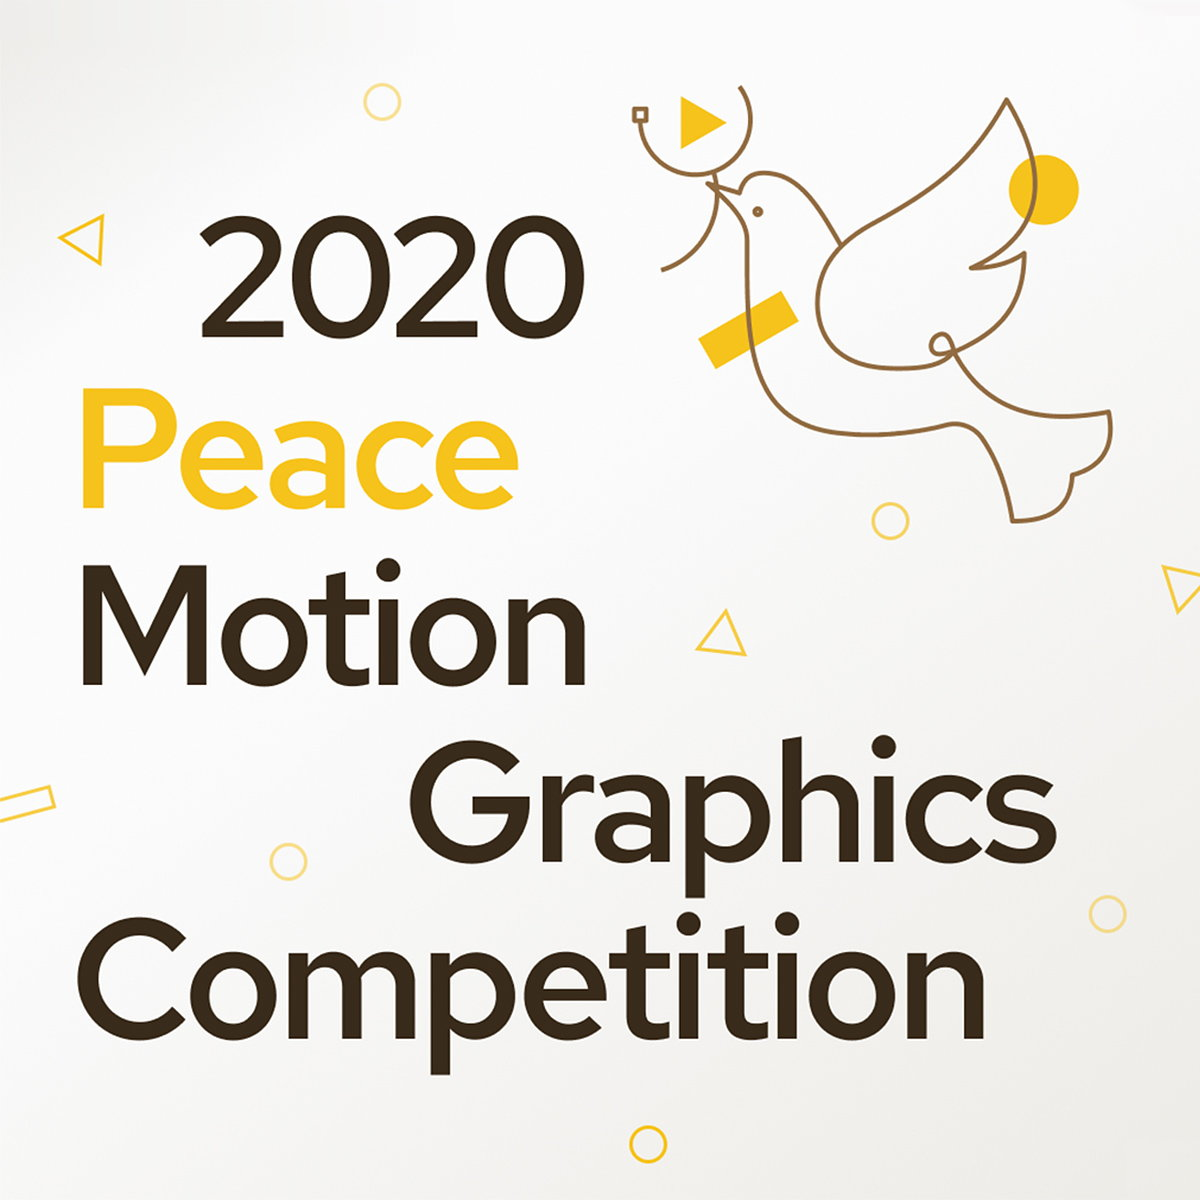 2020 Peace Motion Graphics Competition Opens for Entries